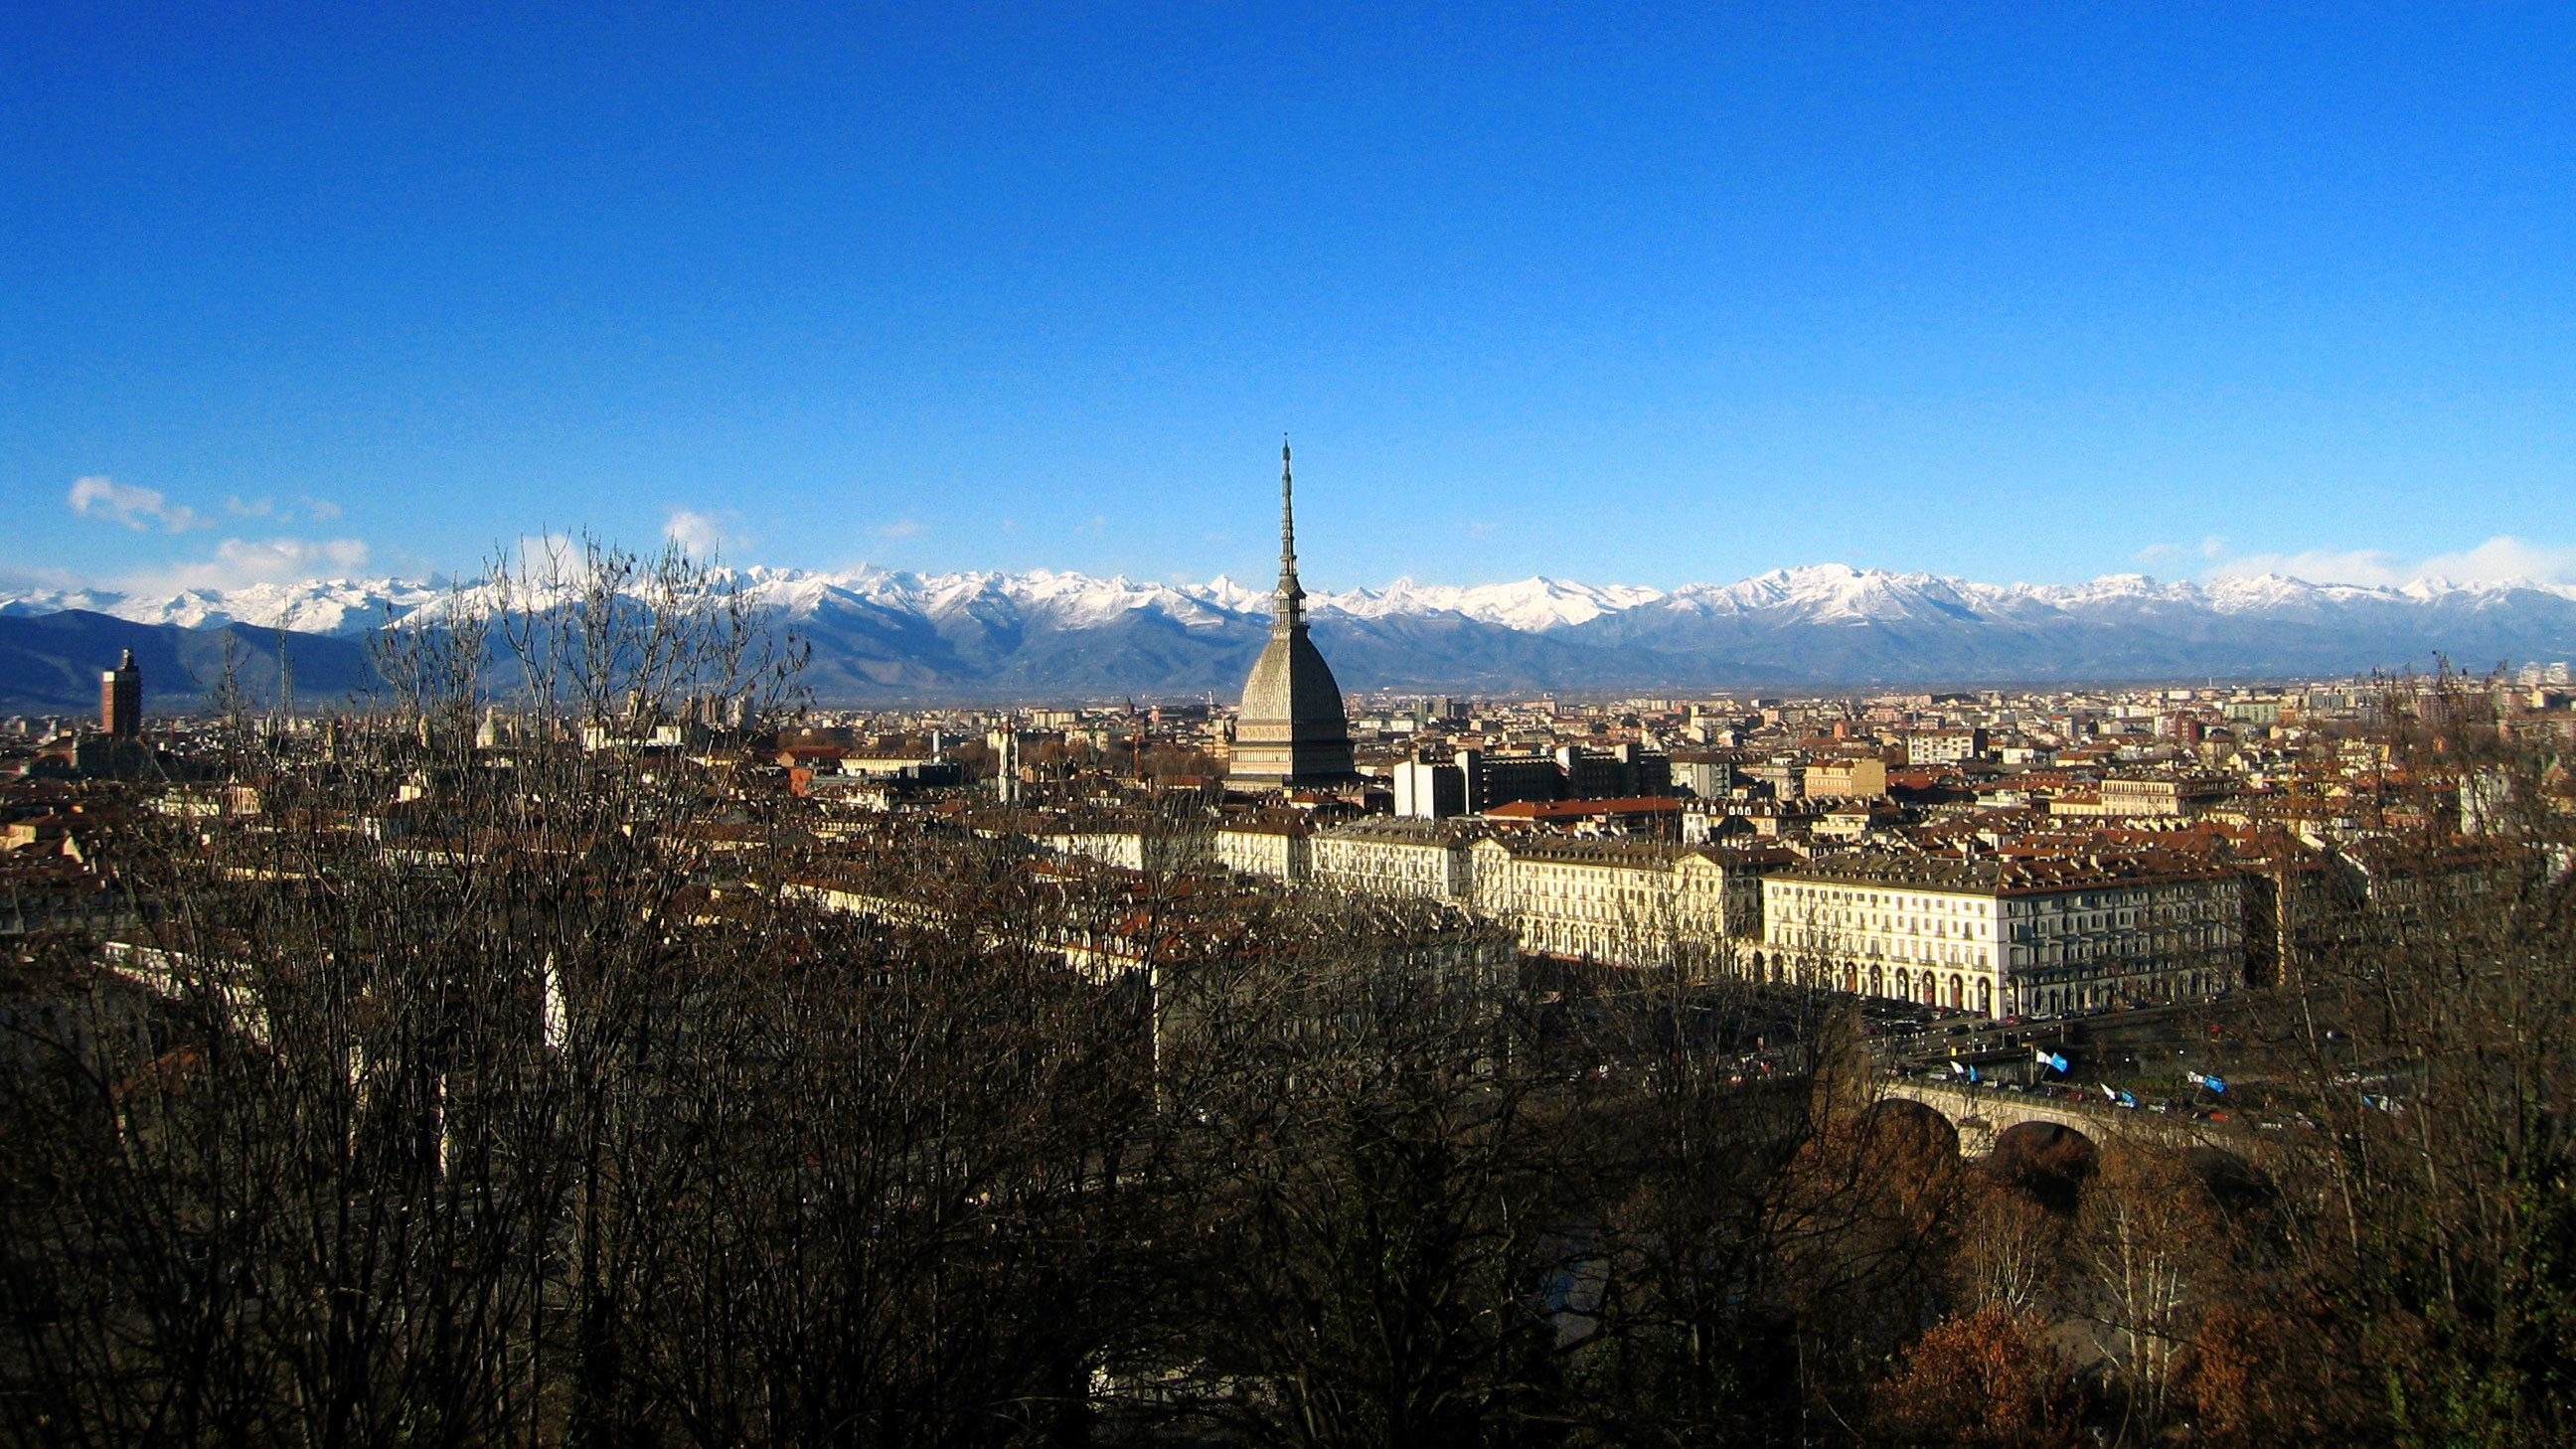 View of the city of Turin surrounded by mountains